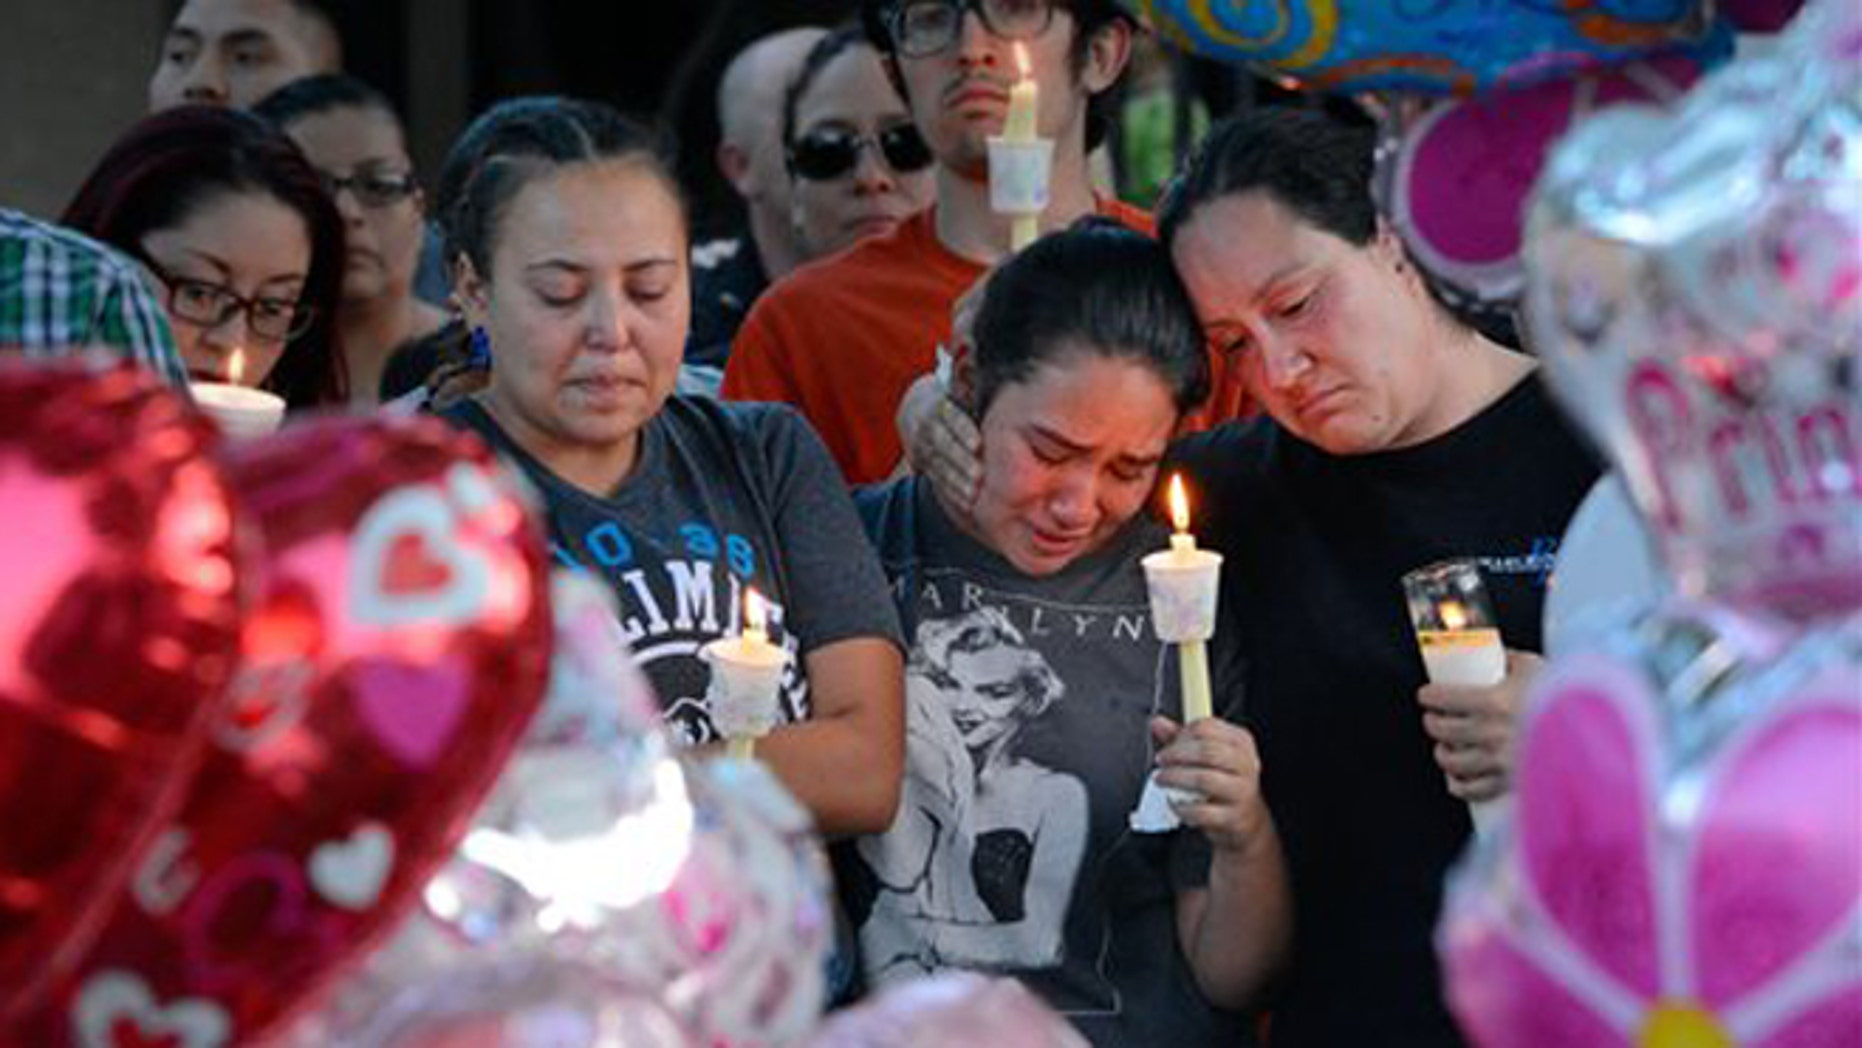 A candlelight vigil for 10-year-old Victoria Martens on Aug. 25, 2016, in Albuquerque, N.M.